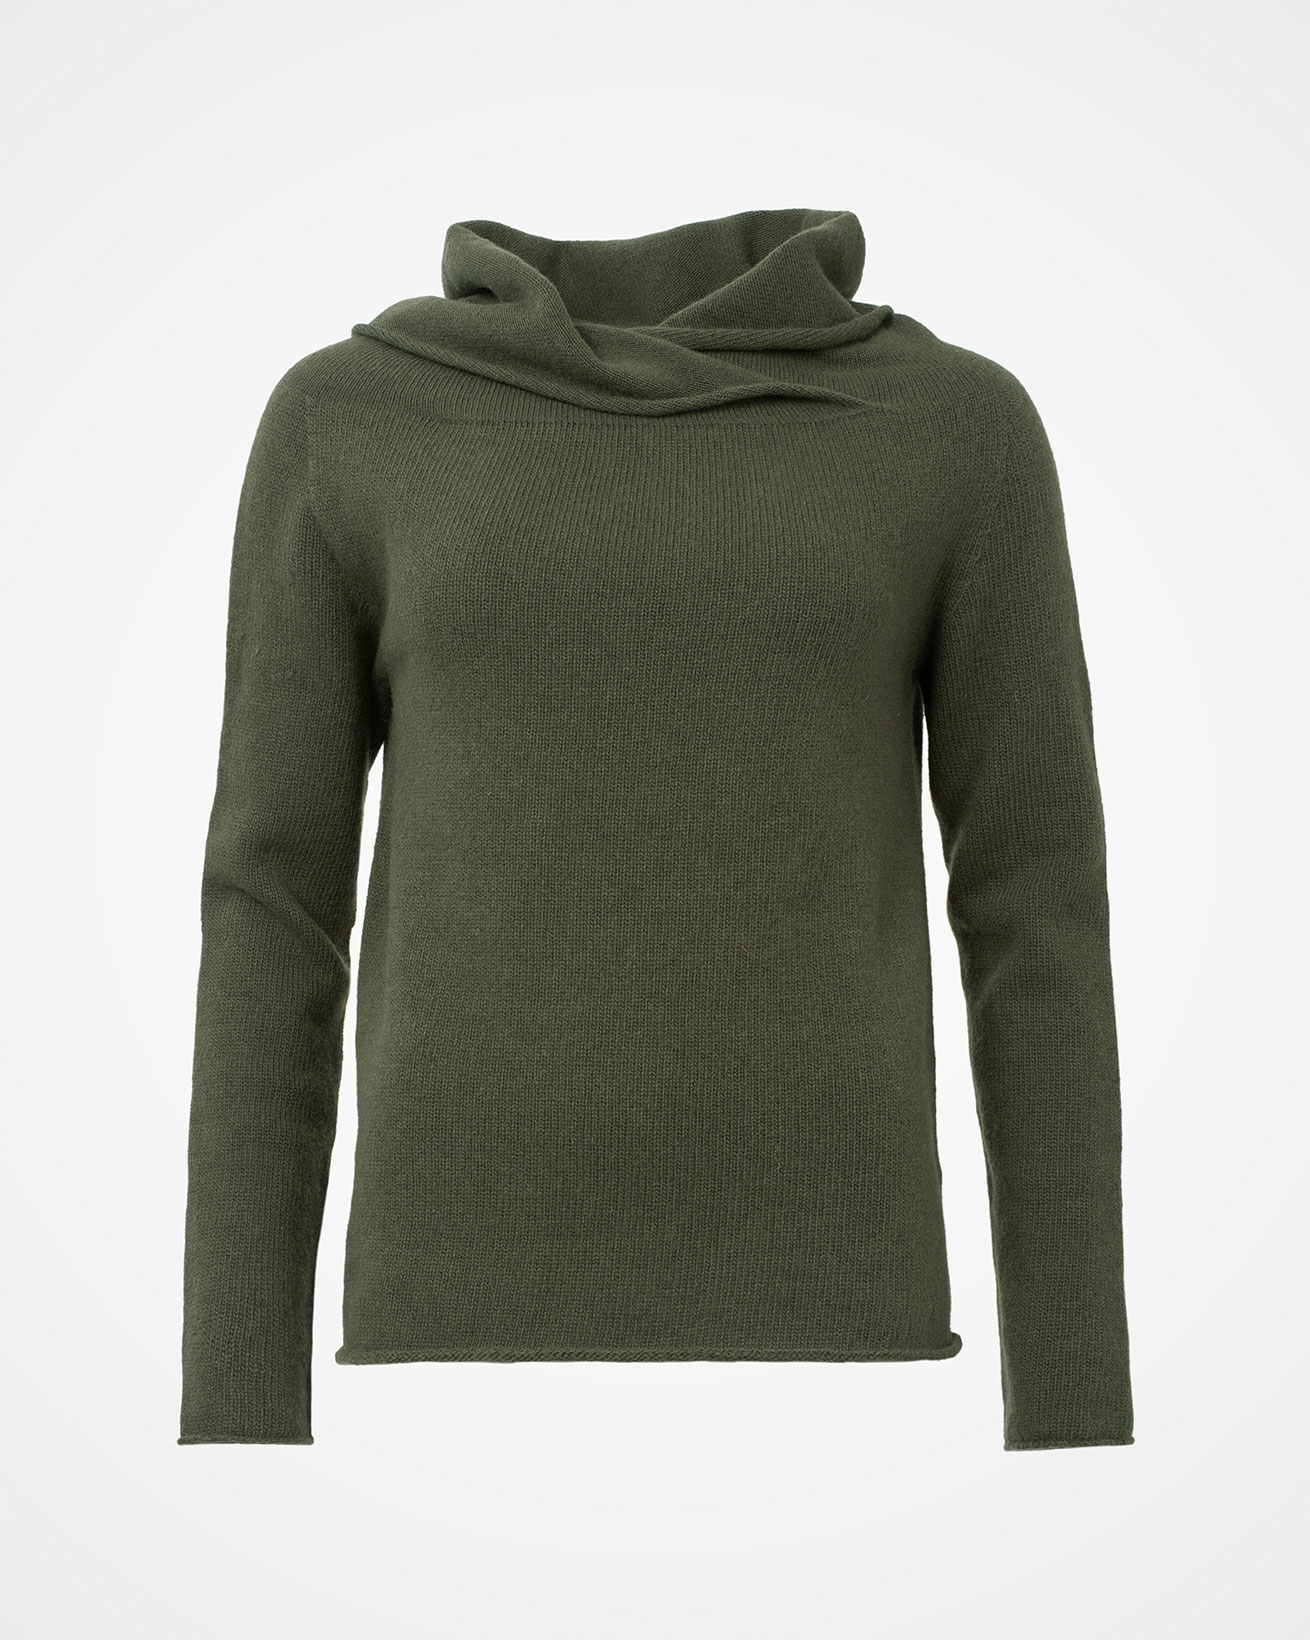 6284_collared-slouch-jumper_olive_front.jpg